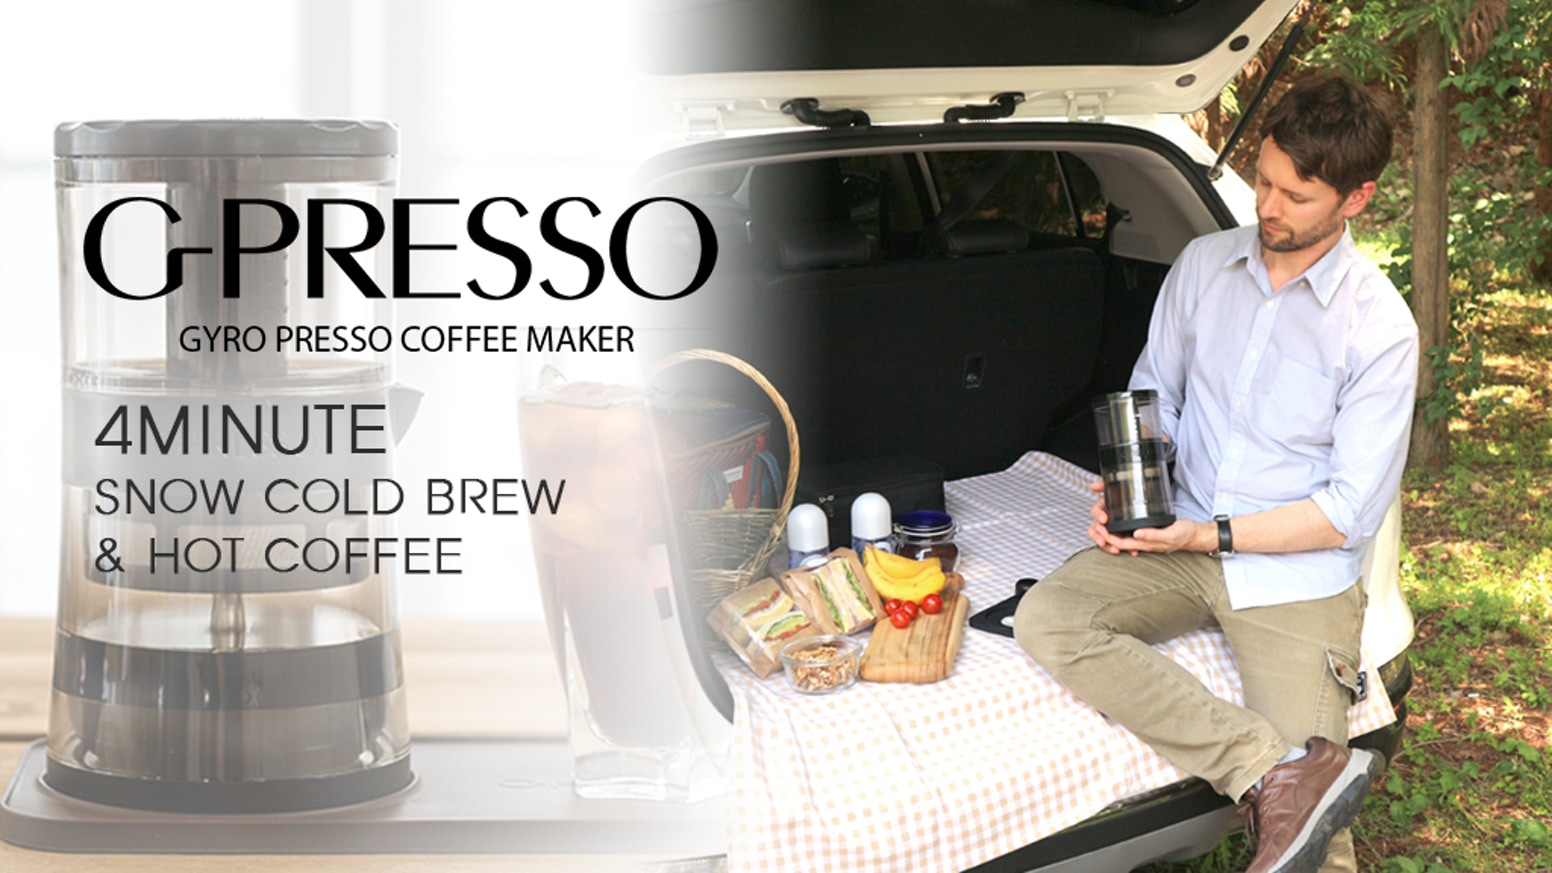 The first Gyro-Press coffee maker that uses a spinning filter-basket to make both coldbrew and hot coffee with CREMA!